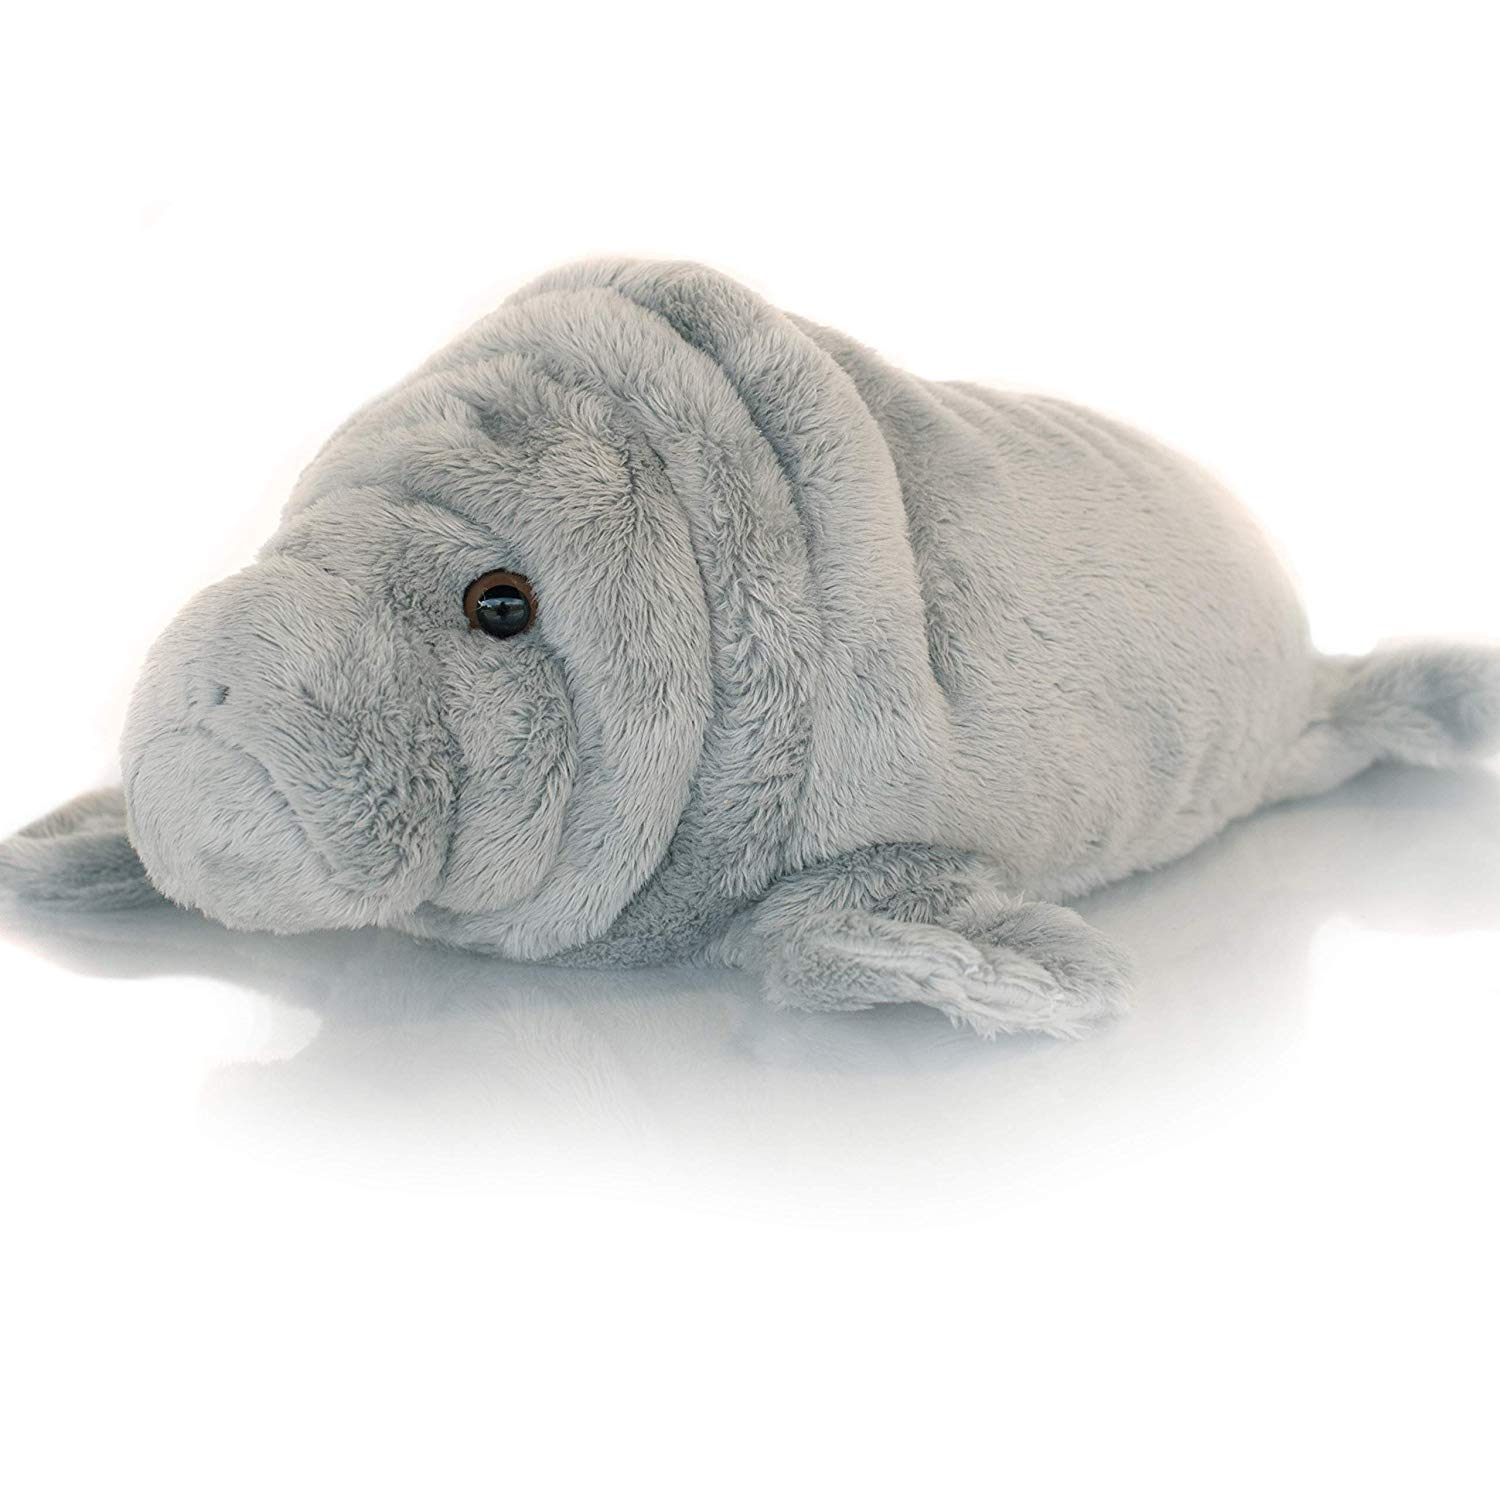 Sootheze Manatee Aromatherapy Scented Stuffed Animal Toy – Therapeutic Microwavable Heating Pad-Hot Cold Therapy Weighted Pad